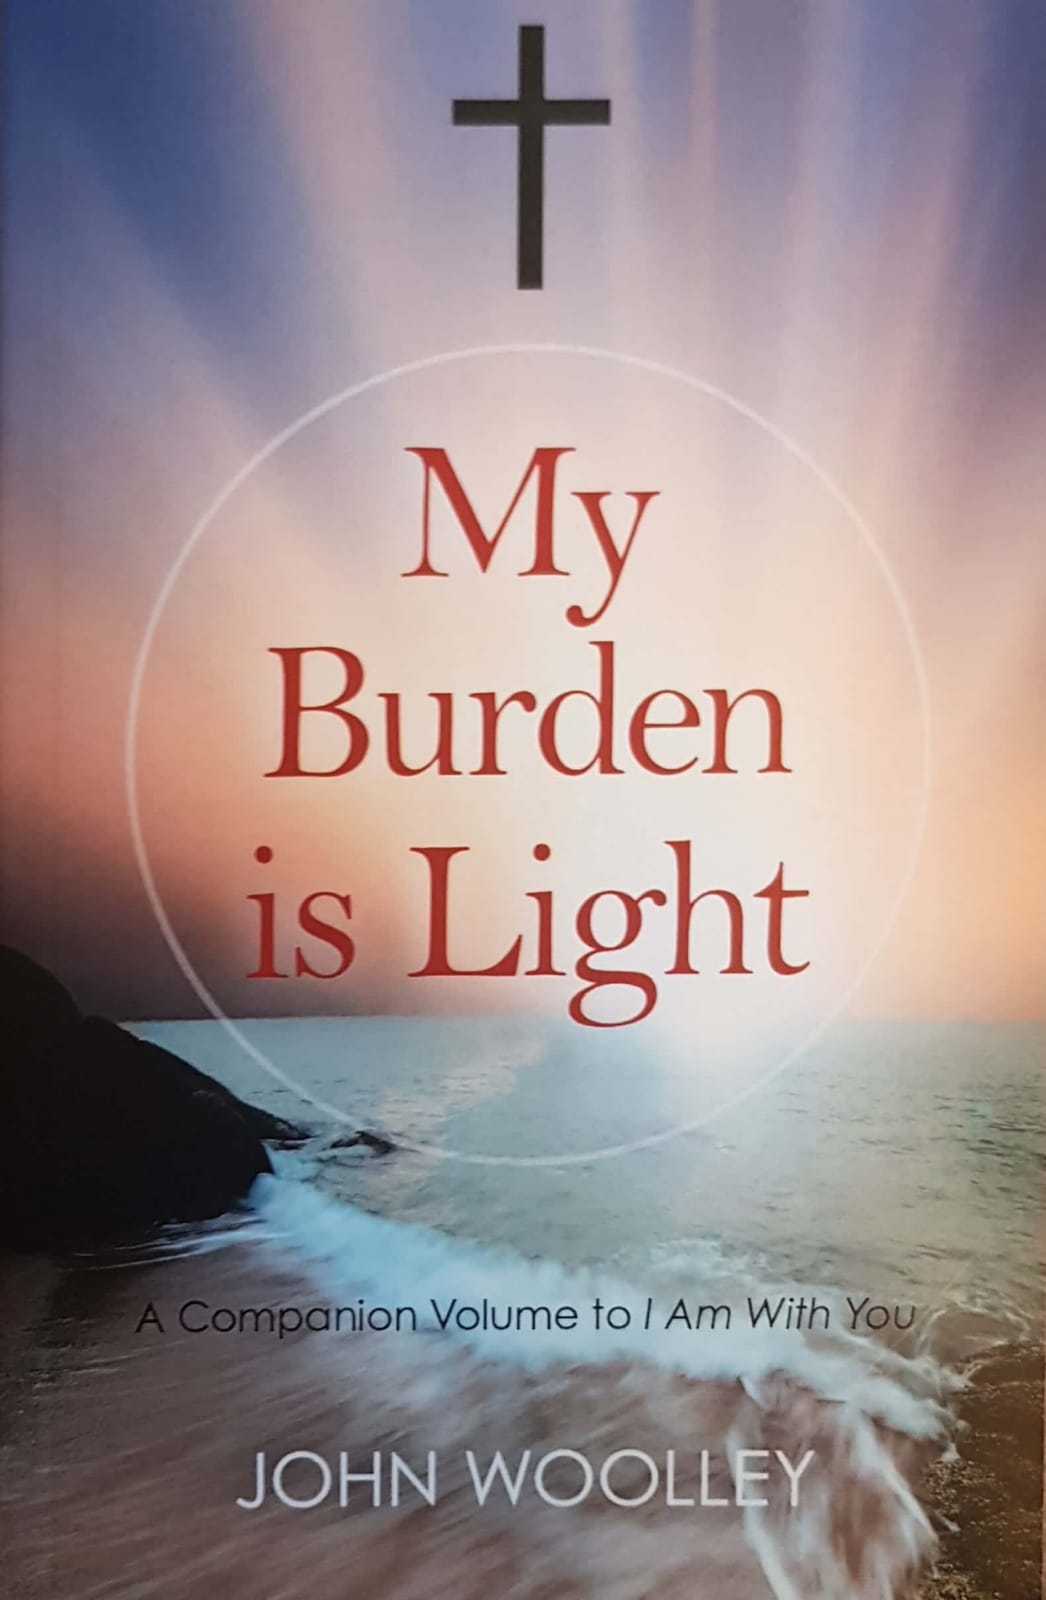 My Burden Is Light - Full Paperback Edition